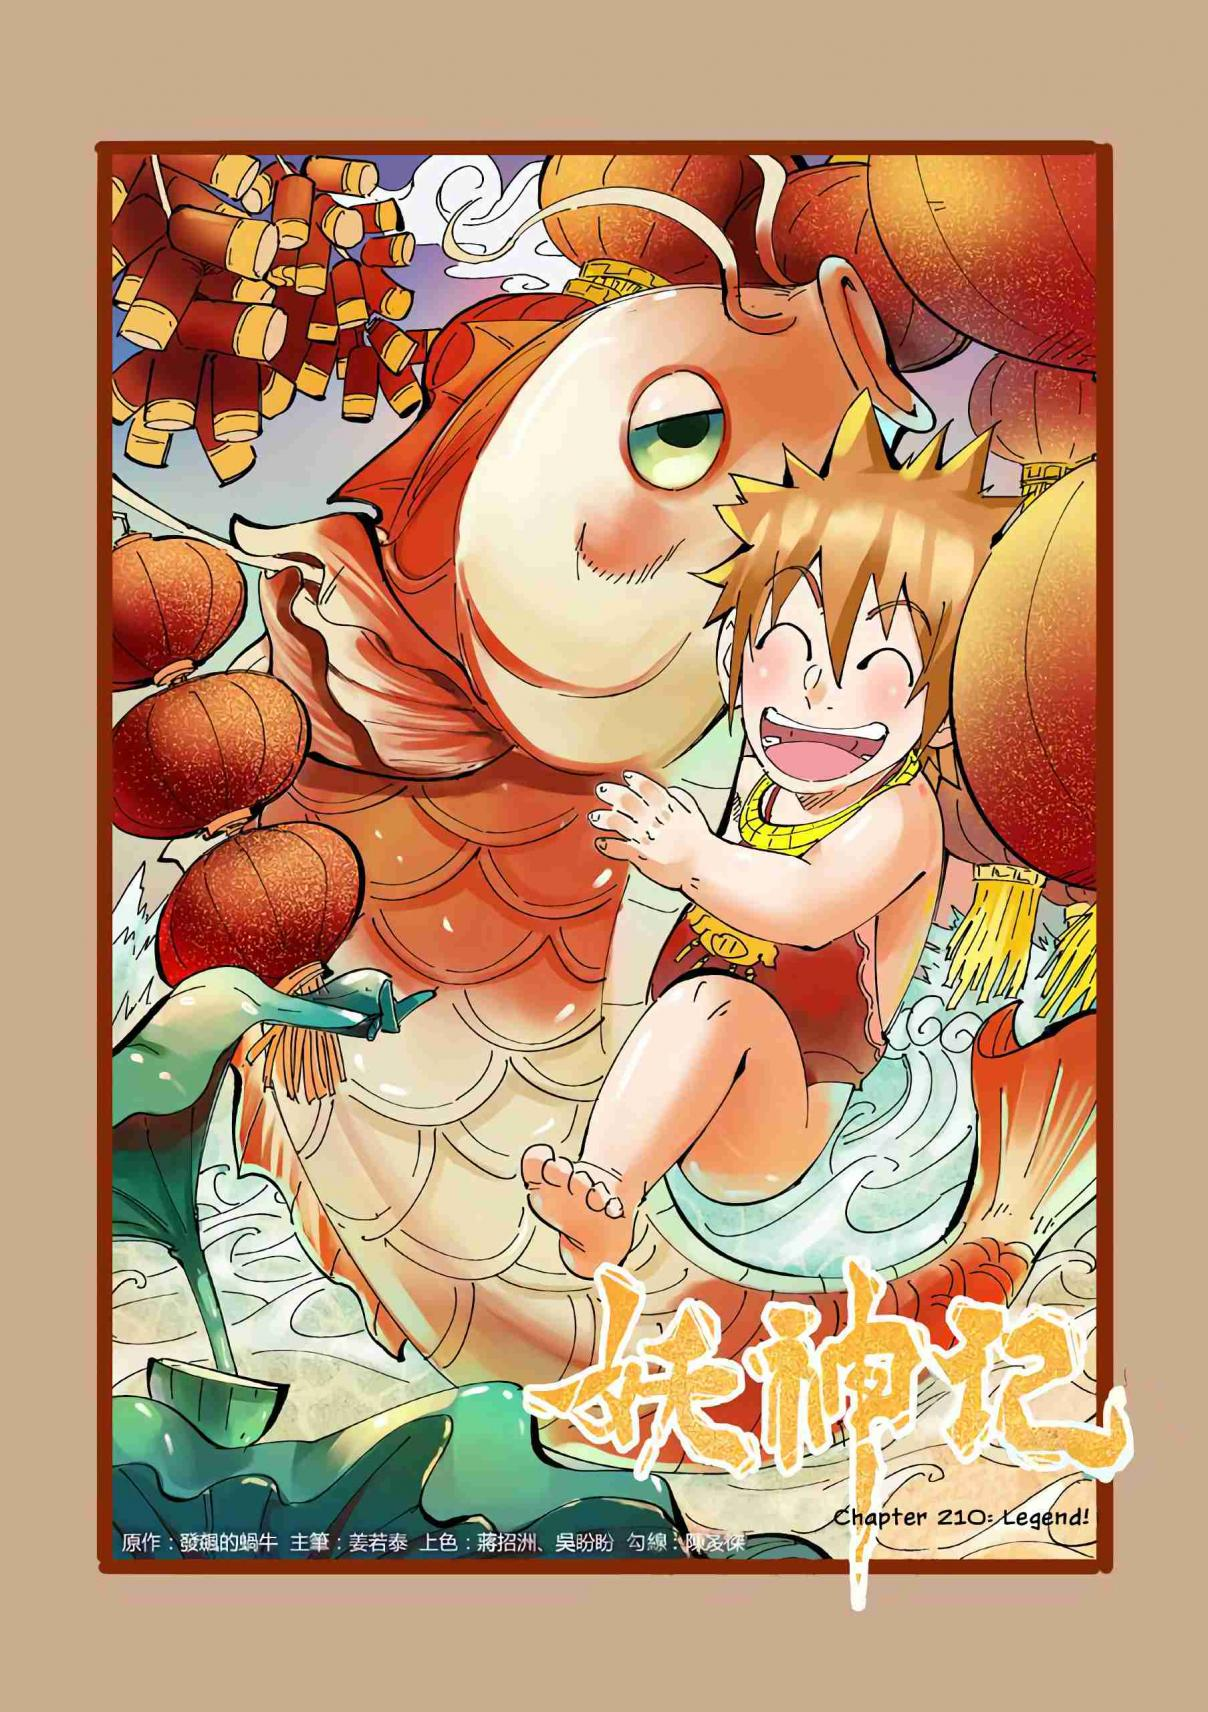 Tales of Demons and Gods Ch. 210 Legend!